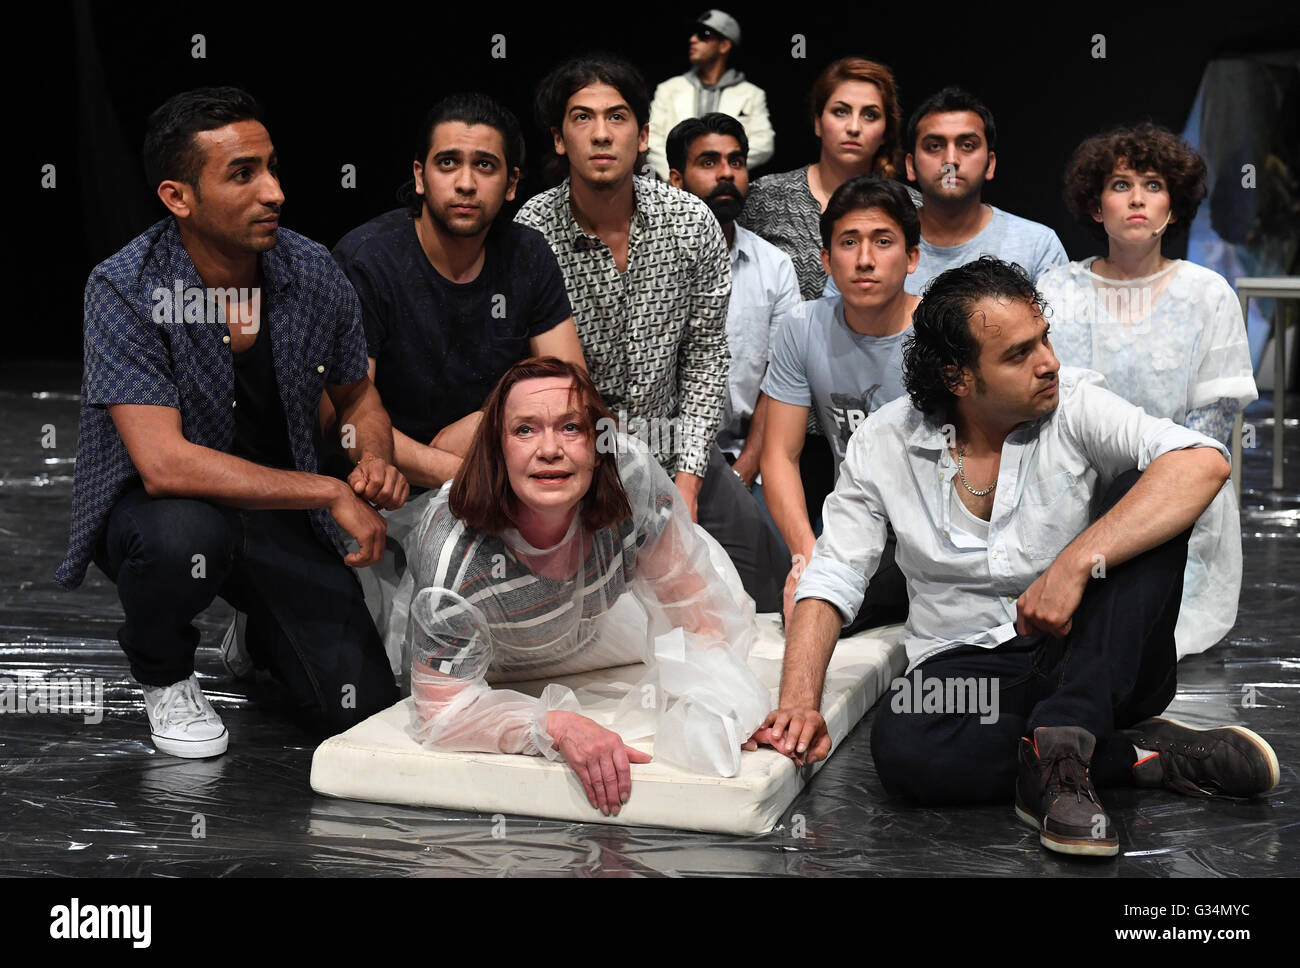 Leipzig, Germany. 7th June, 2016. Actress Martina Krompholz (m) enacts a scence together with refugees during the - Stock Image